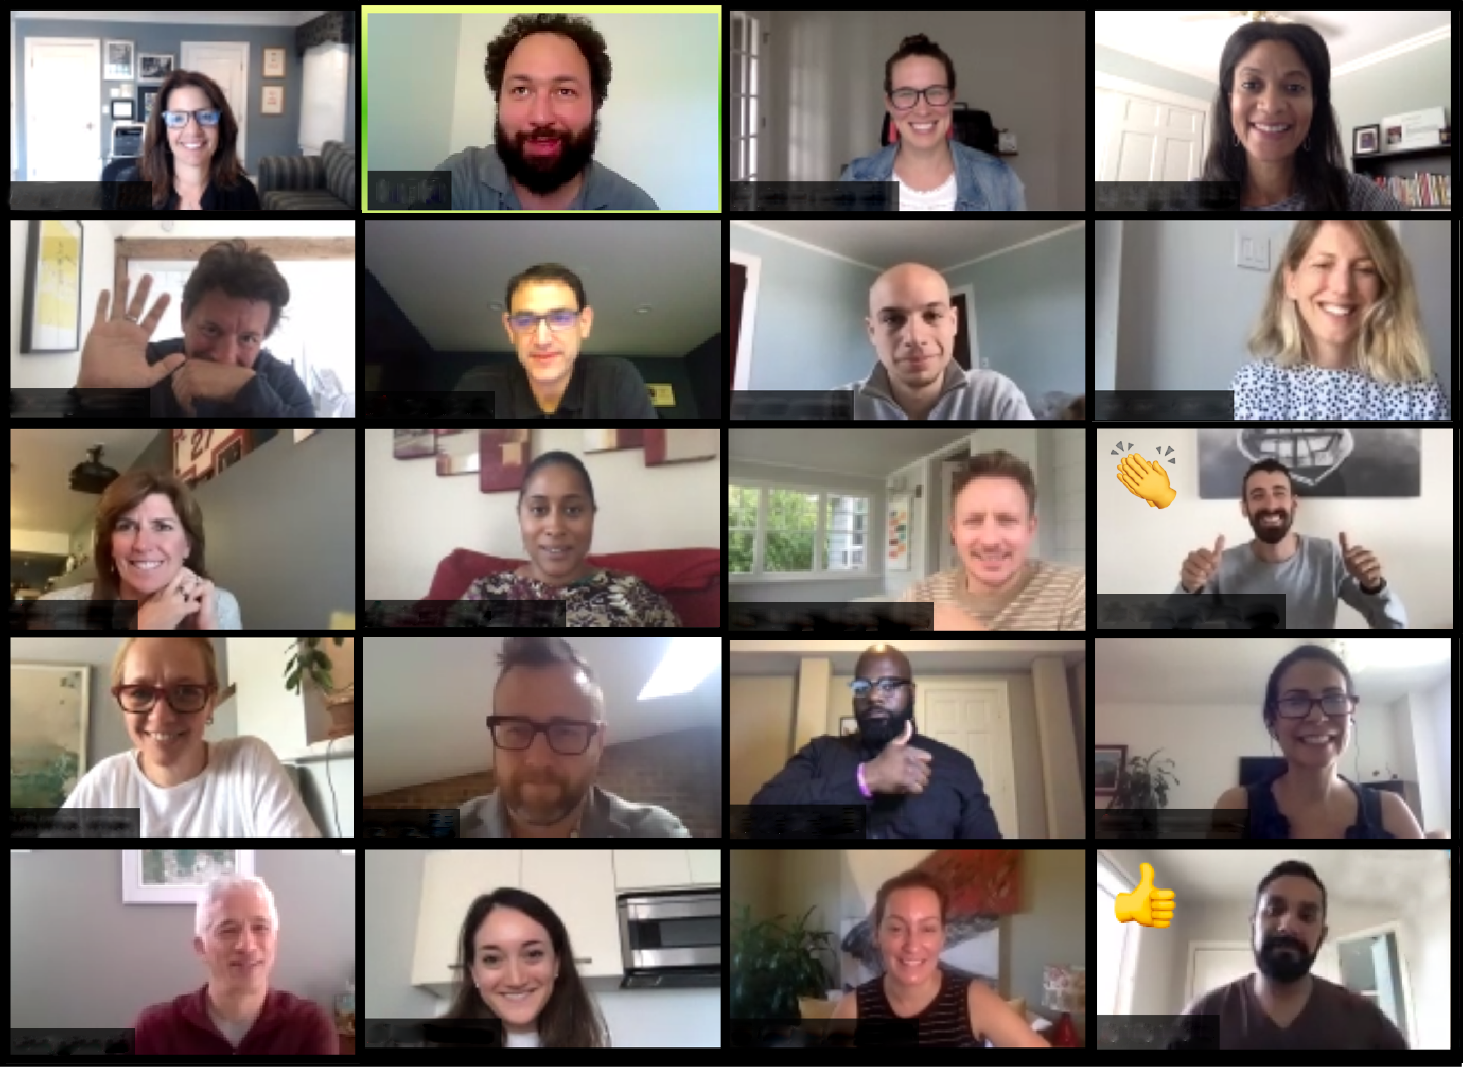 Fast Forward professional development training participants on a Zoom meeting screen during a virtual corporate training session